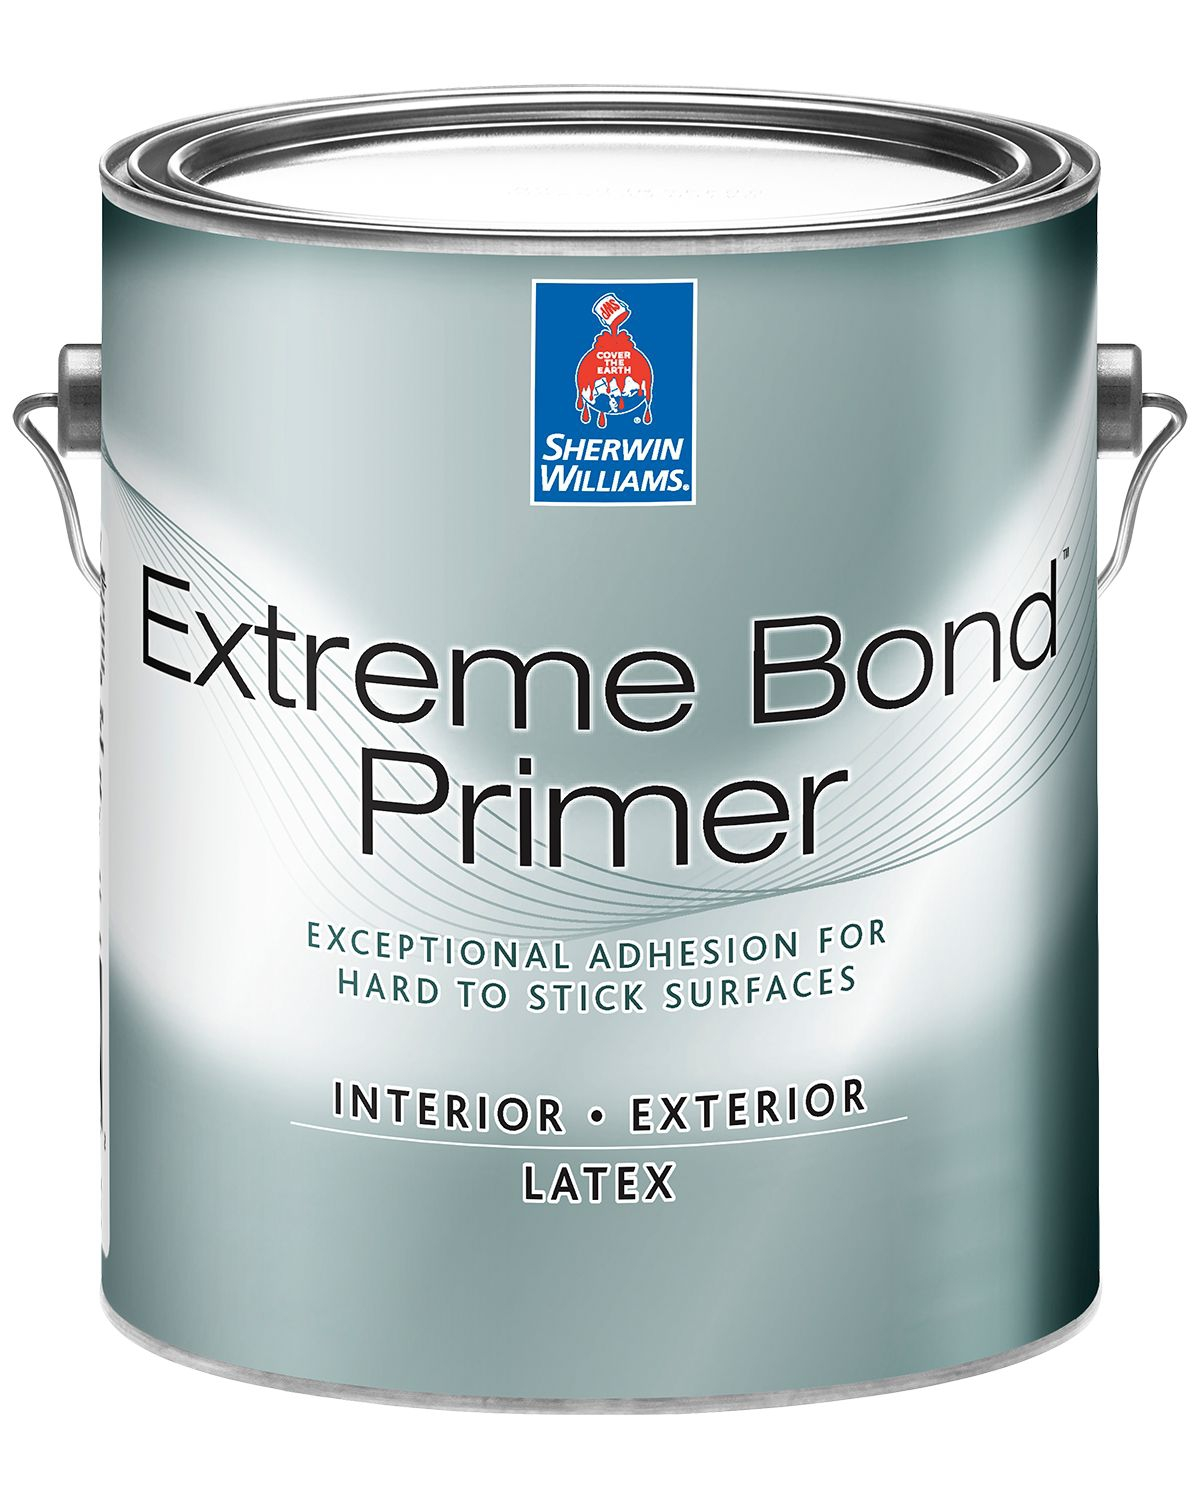 Image of primer can